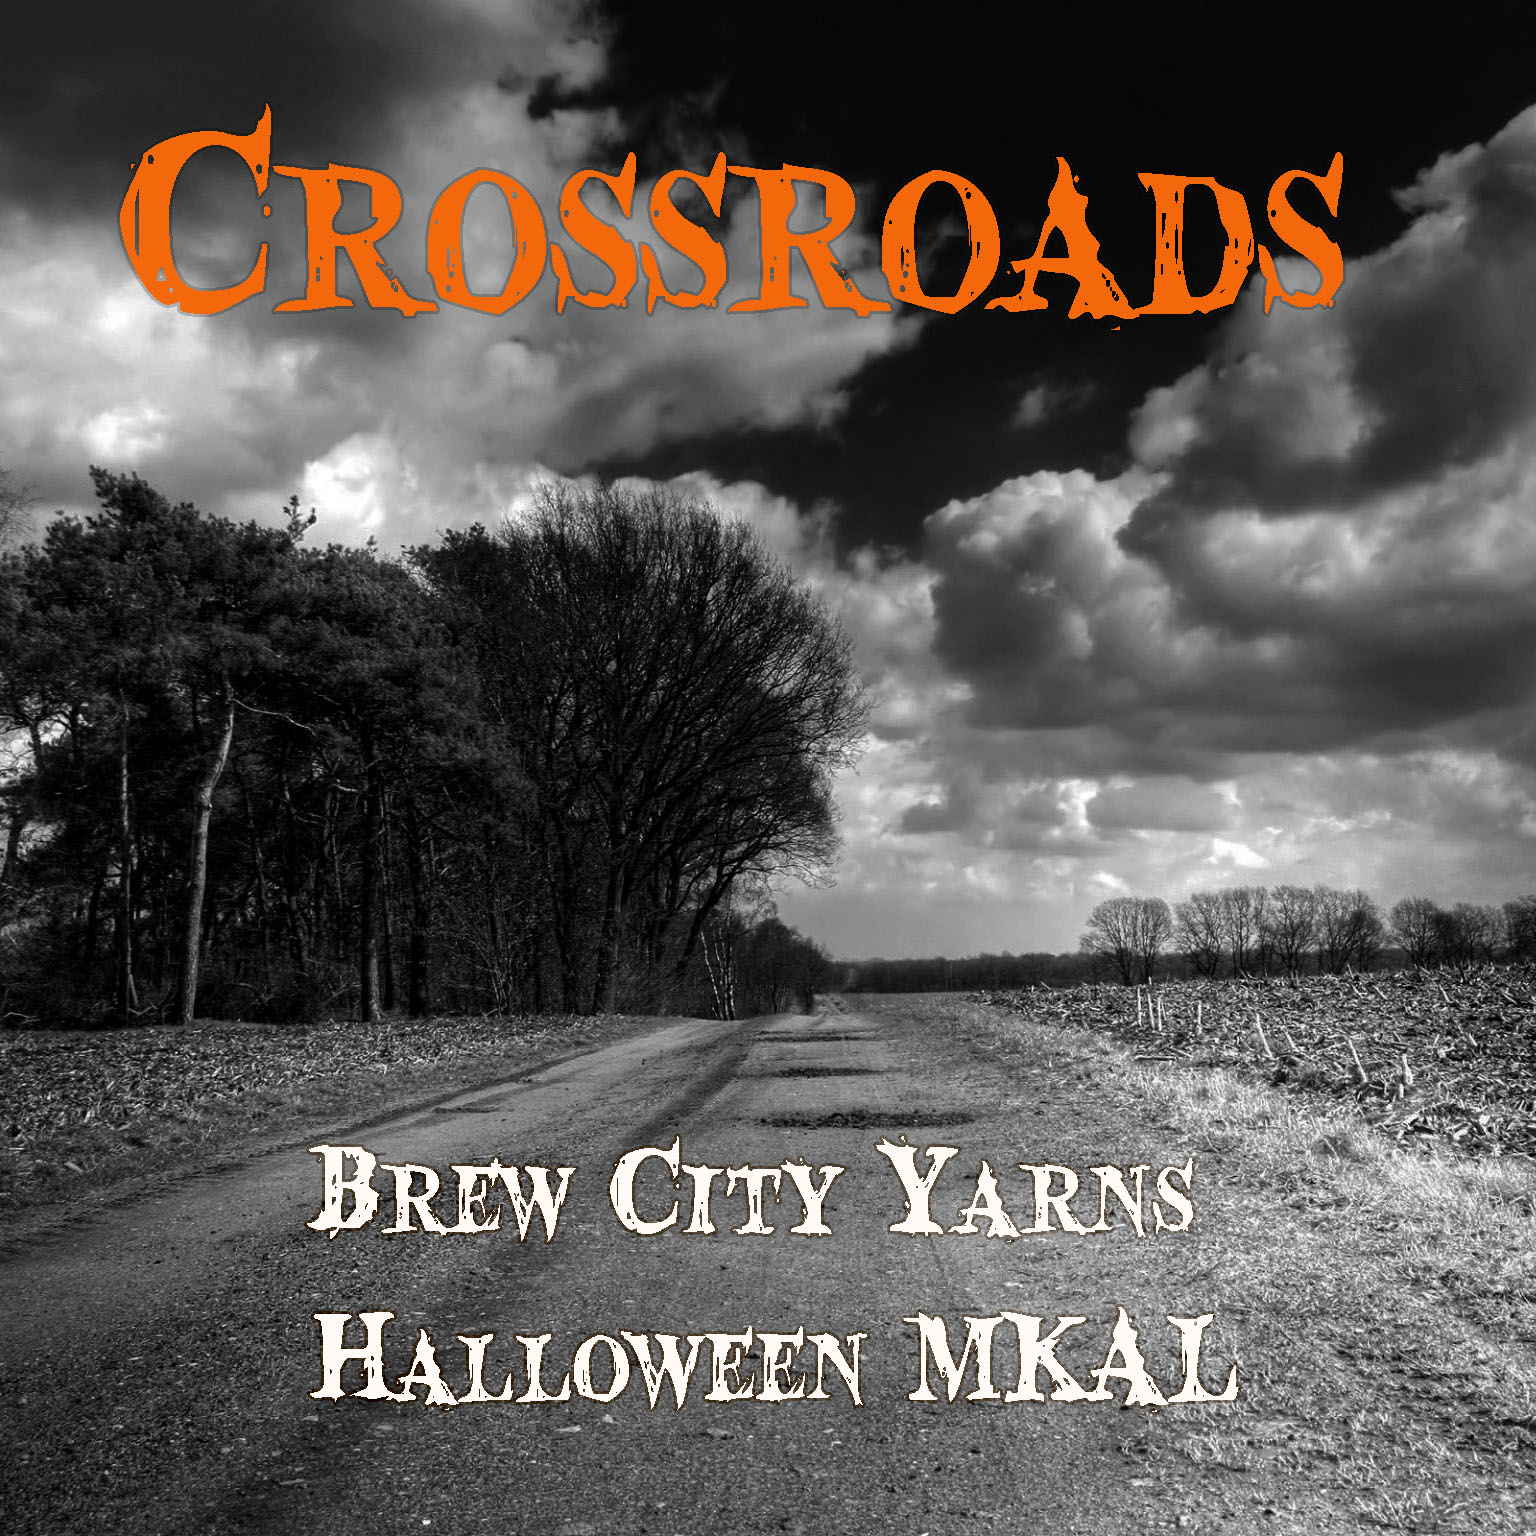 Image of Brew City Halloween MKAL